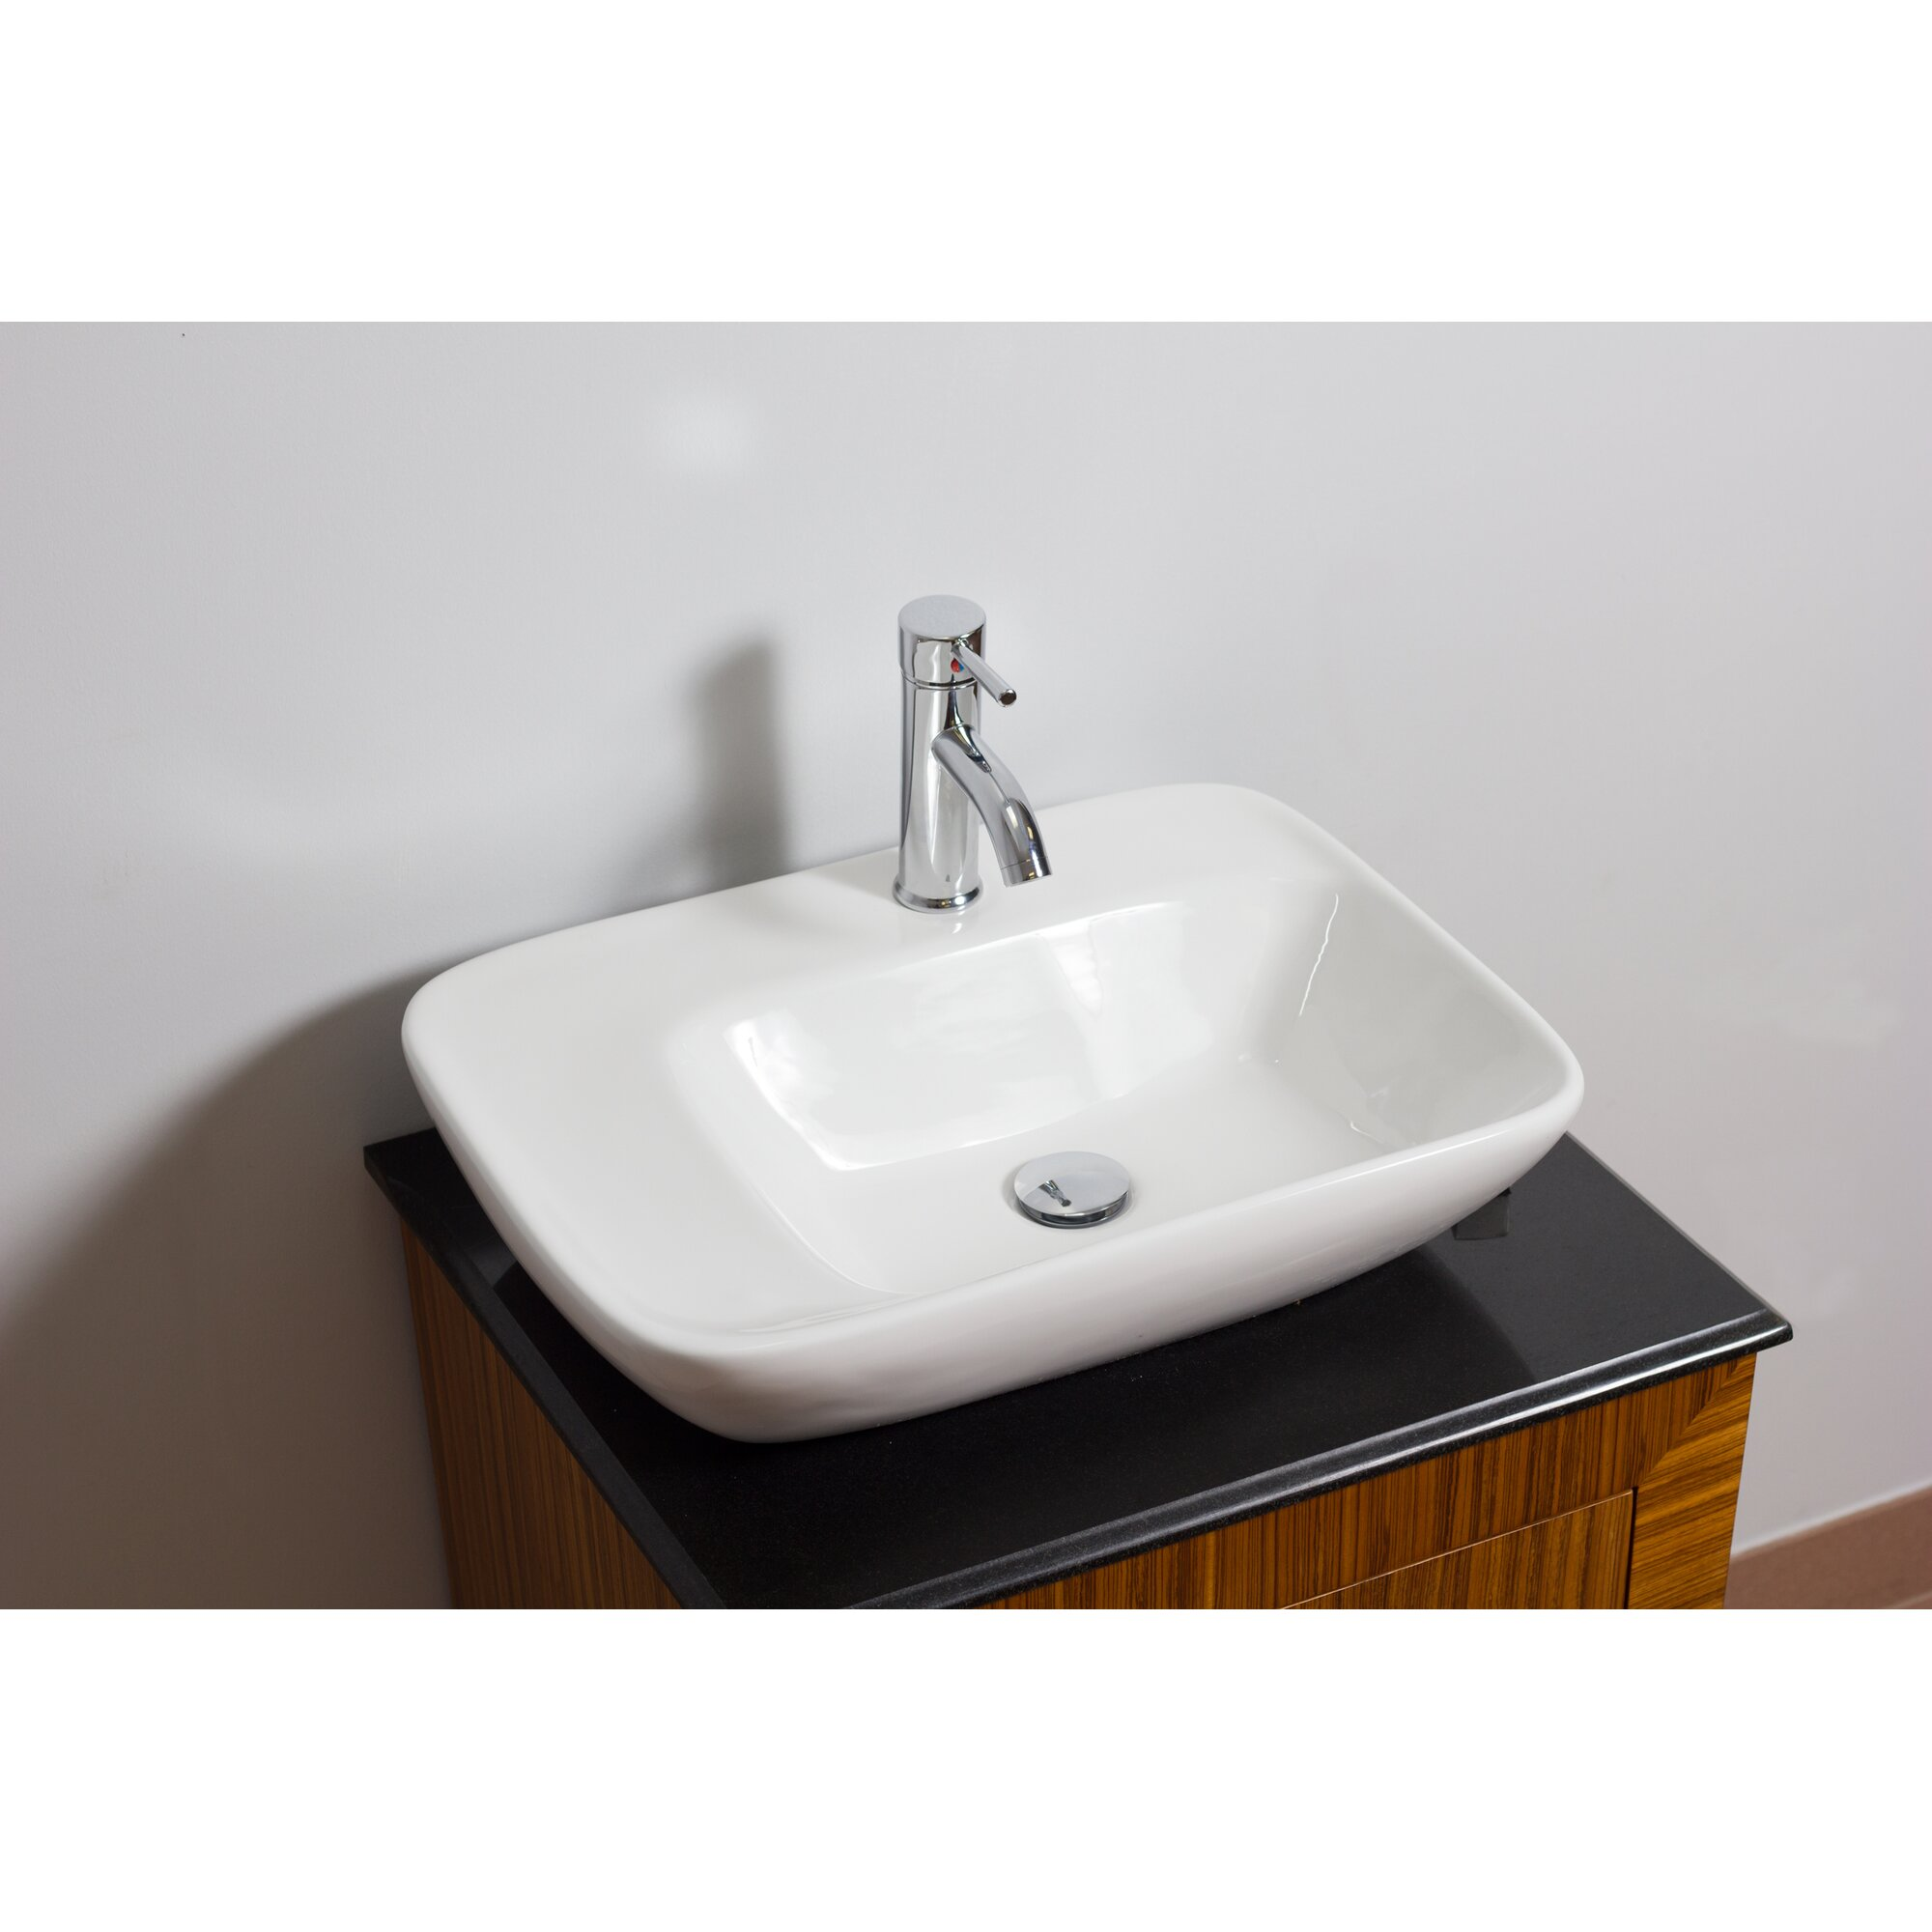 American imaginations above counter rectangular vessel bathroom sink with overflow reviews for Above counter bathroom sinks glass